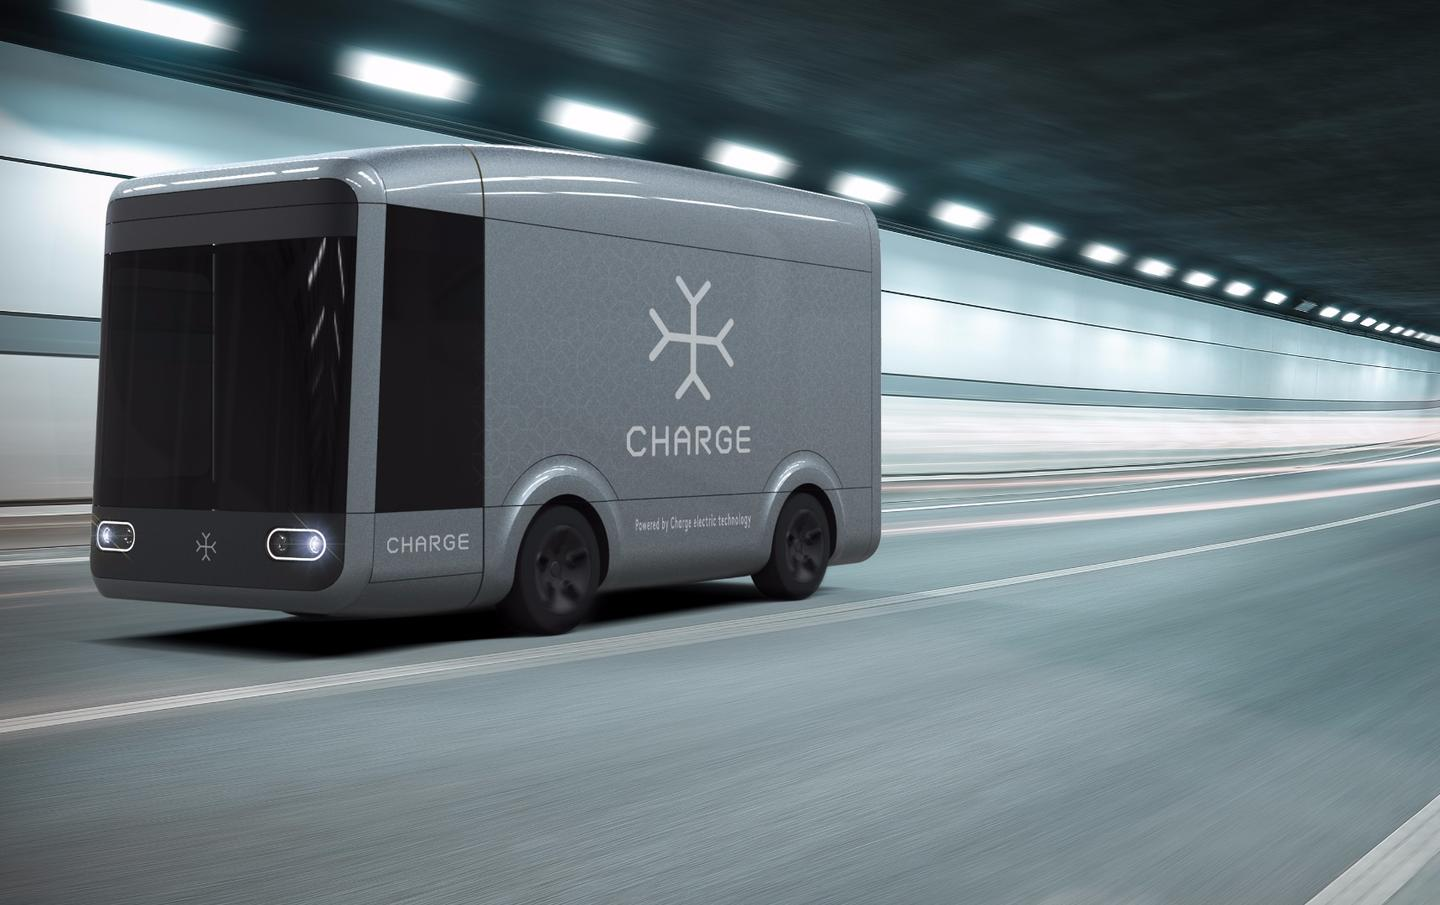 Charge hopes to get its first trucks to market next year